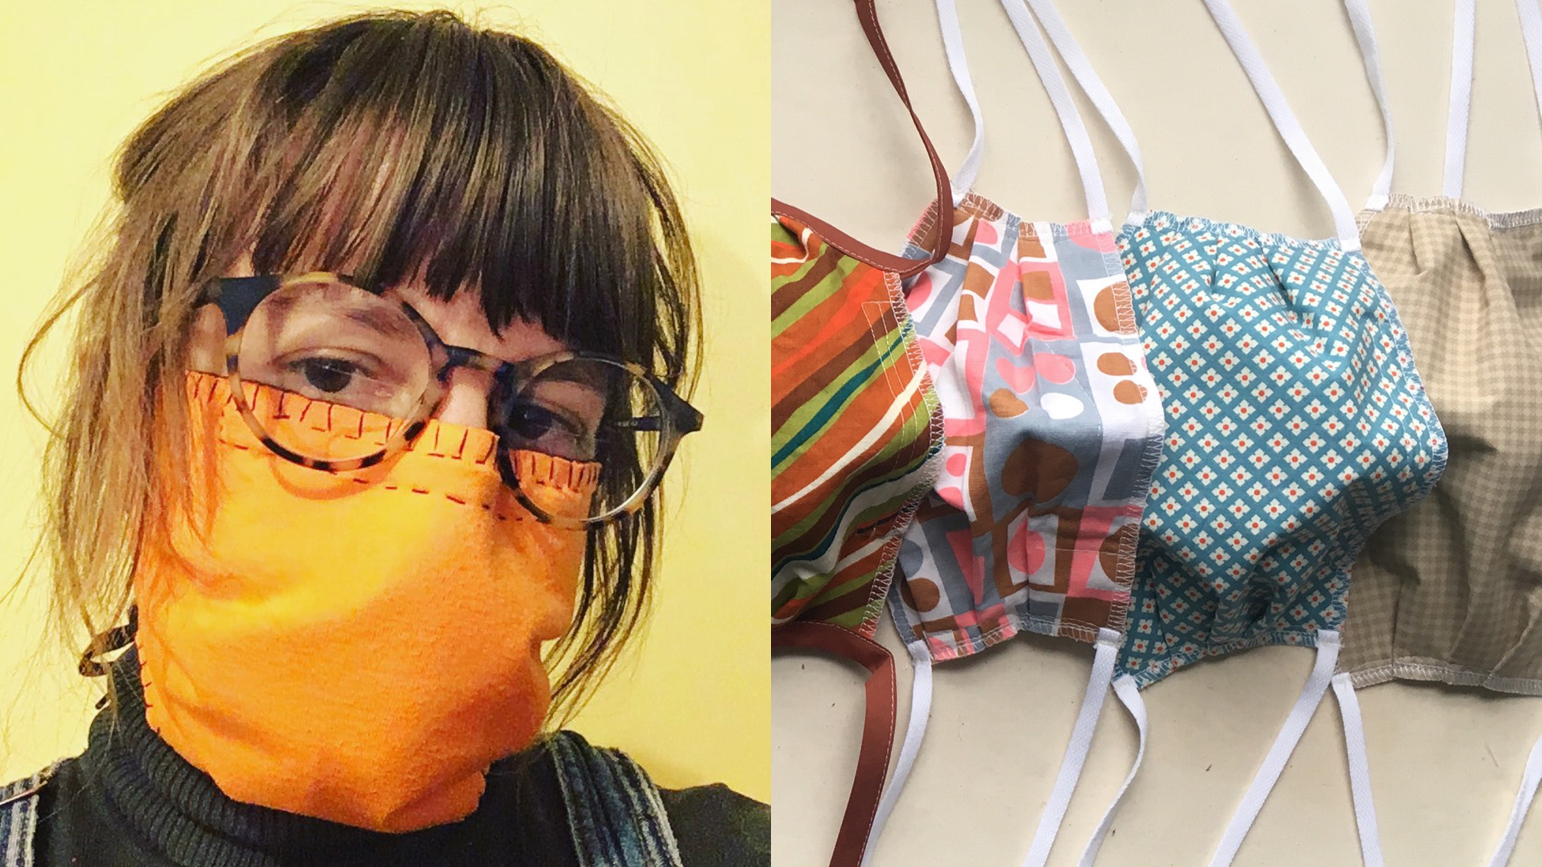 Image of Jenn Gooch wearing a hand-sewn maks and image of several masks lined up